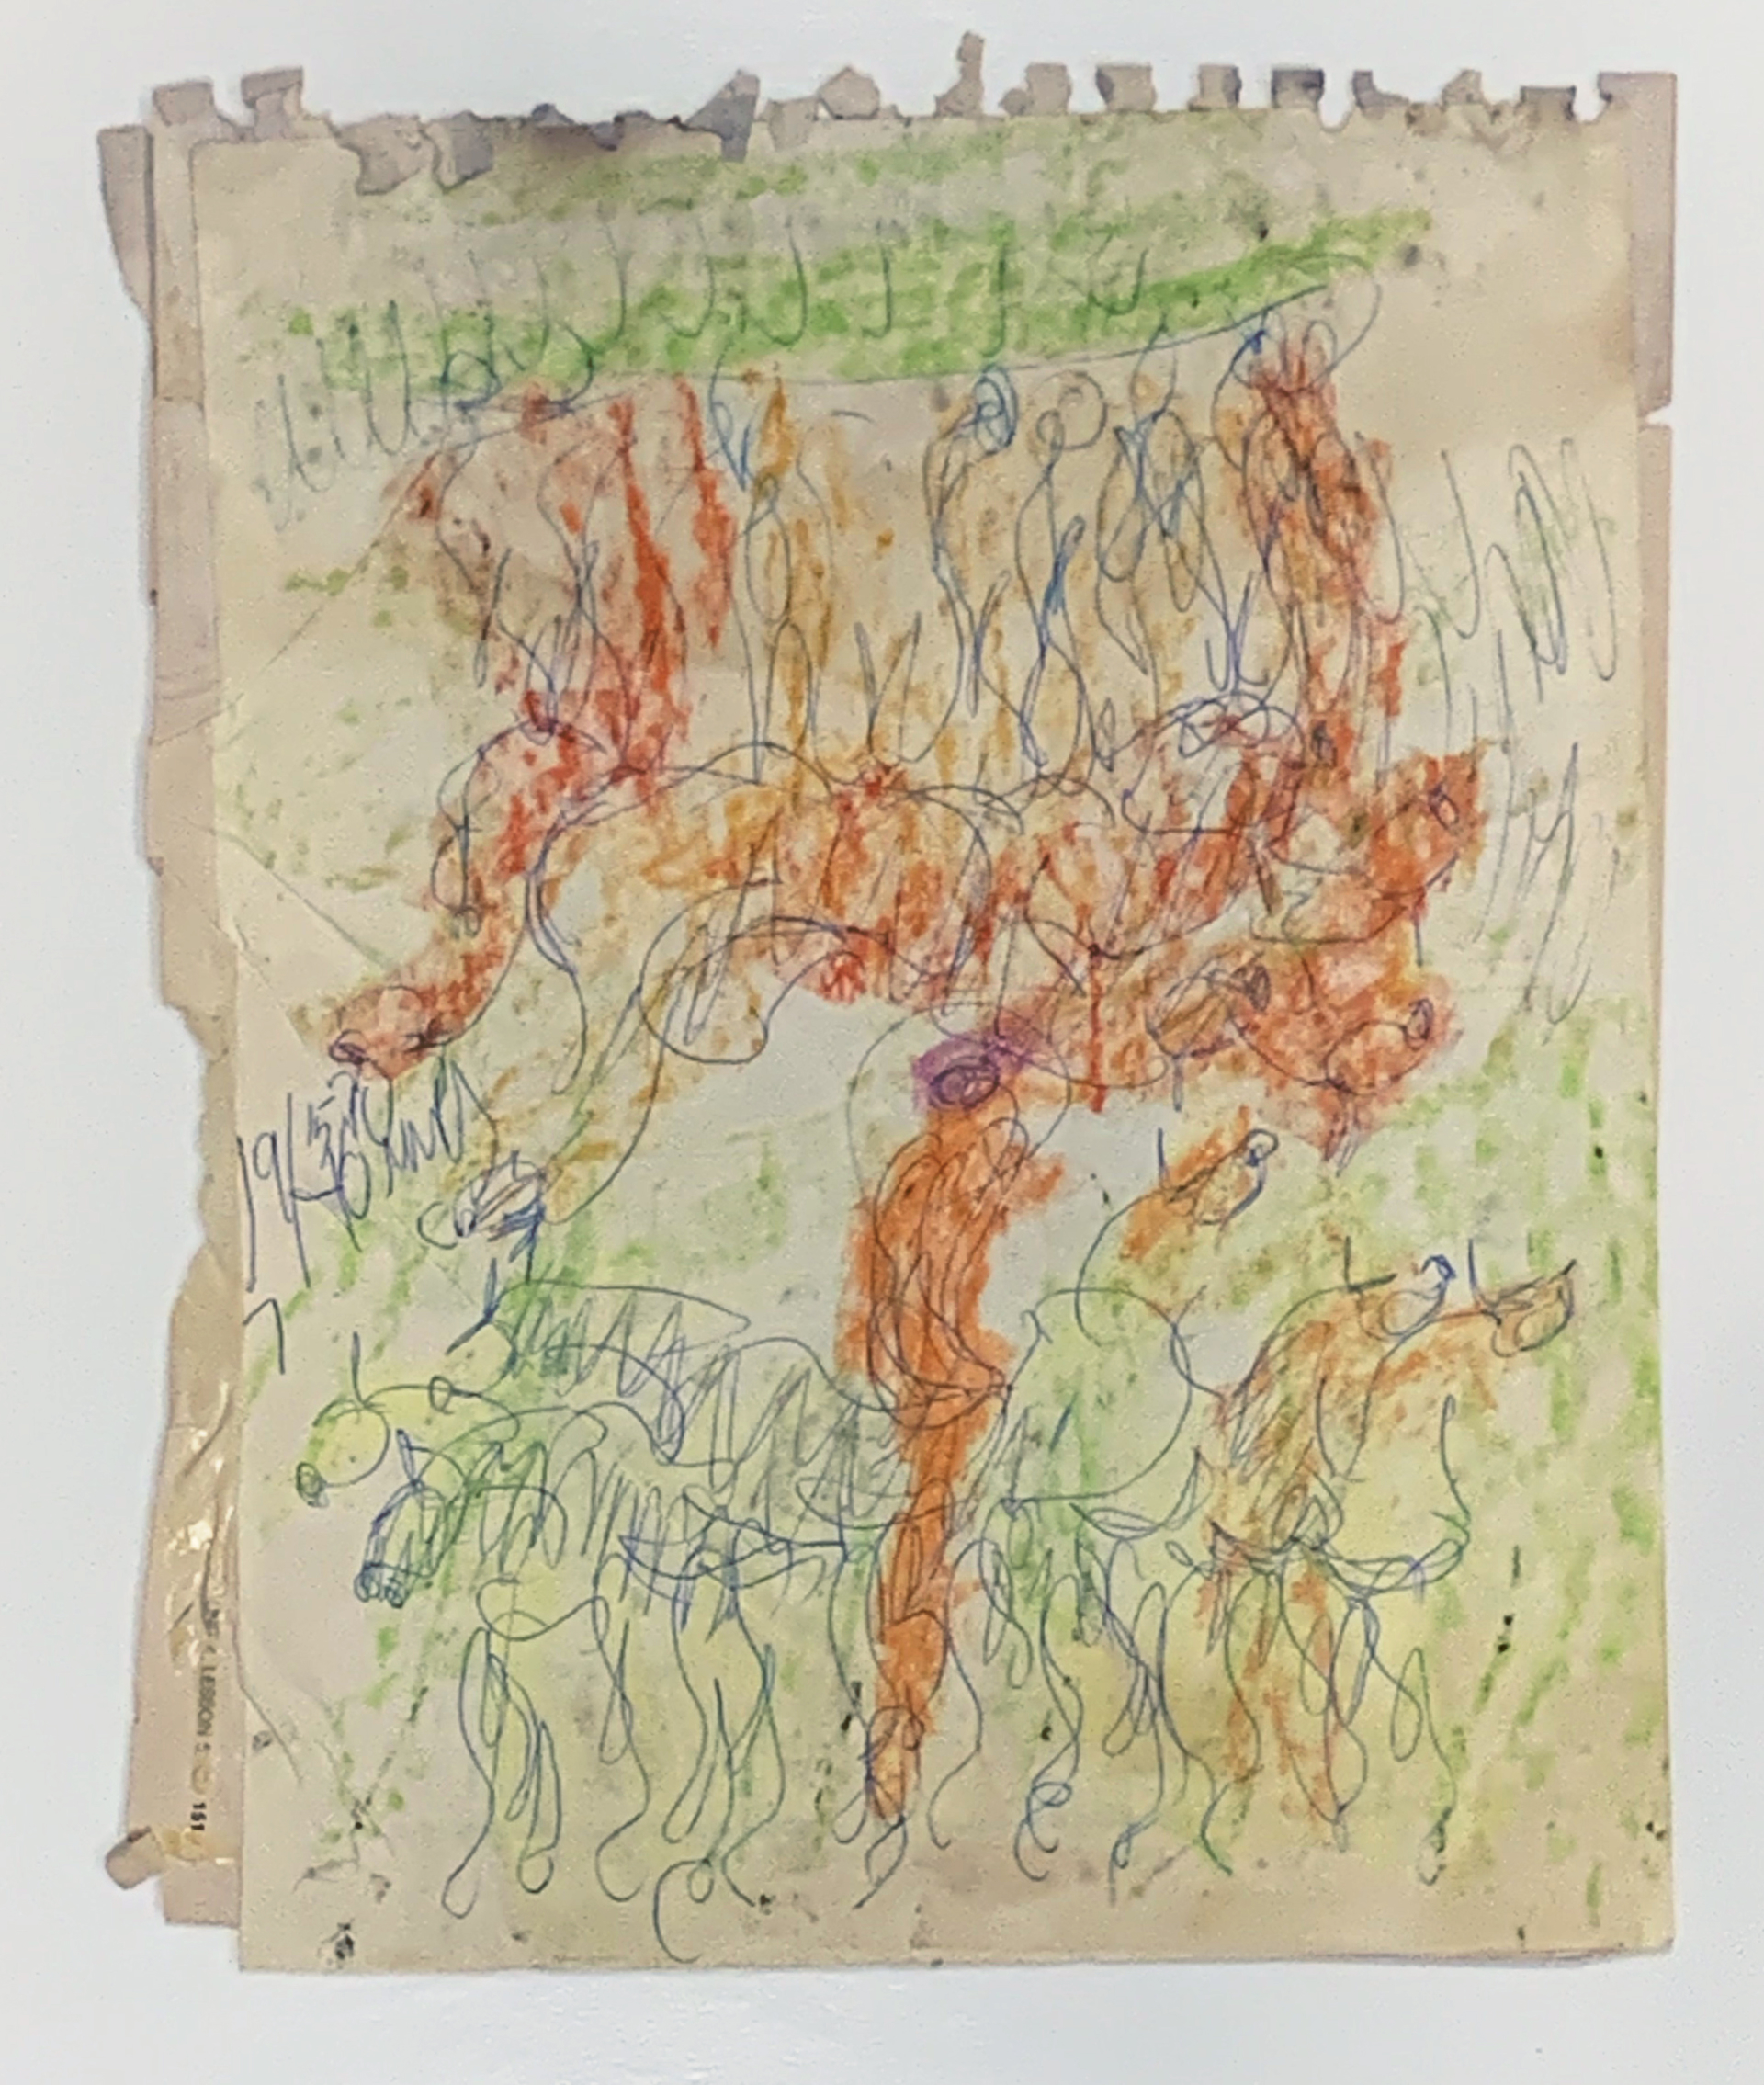 Drawing from the 1980's #20 by Purvis Young (1943 - 2010)